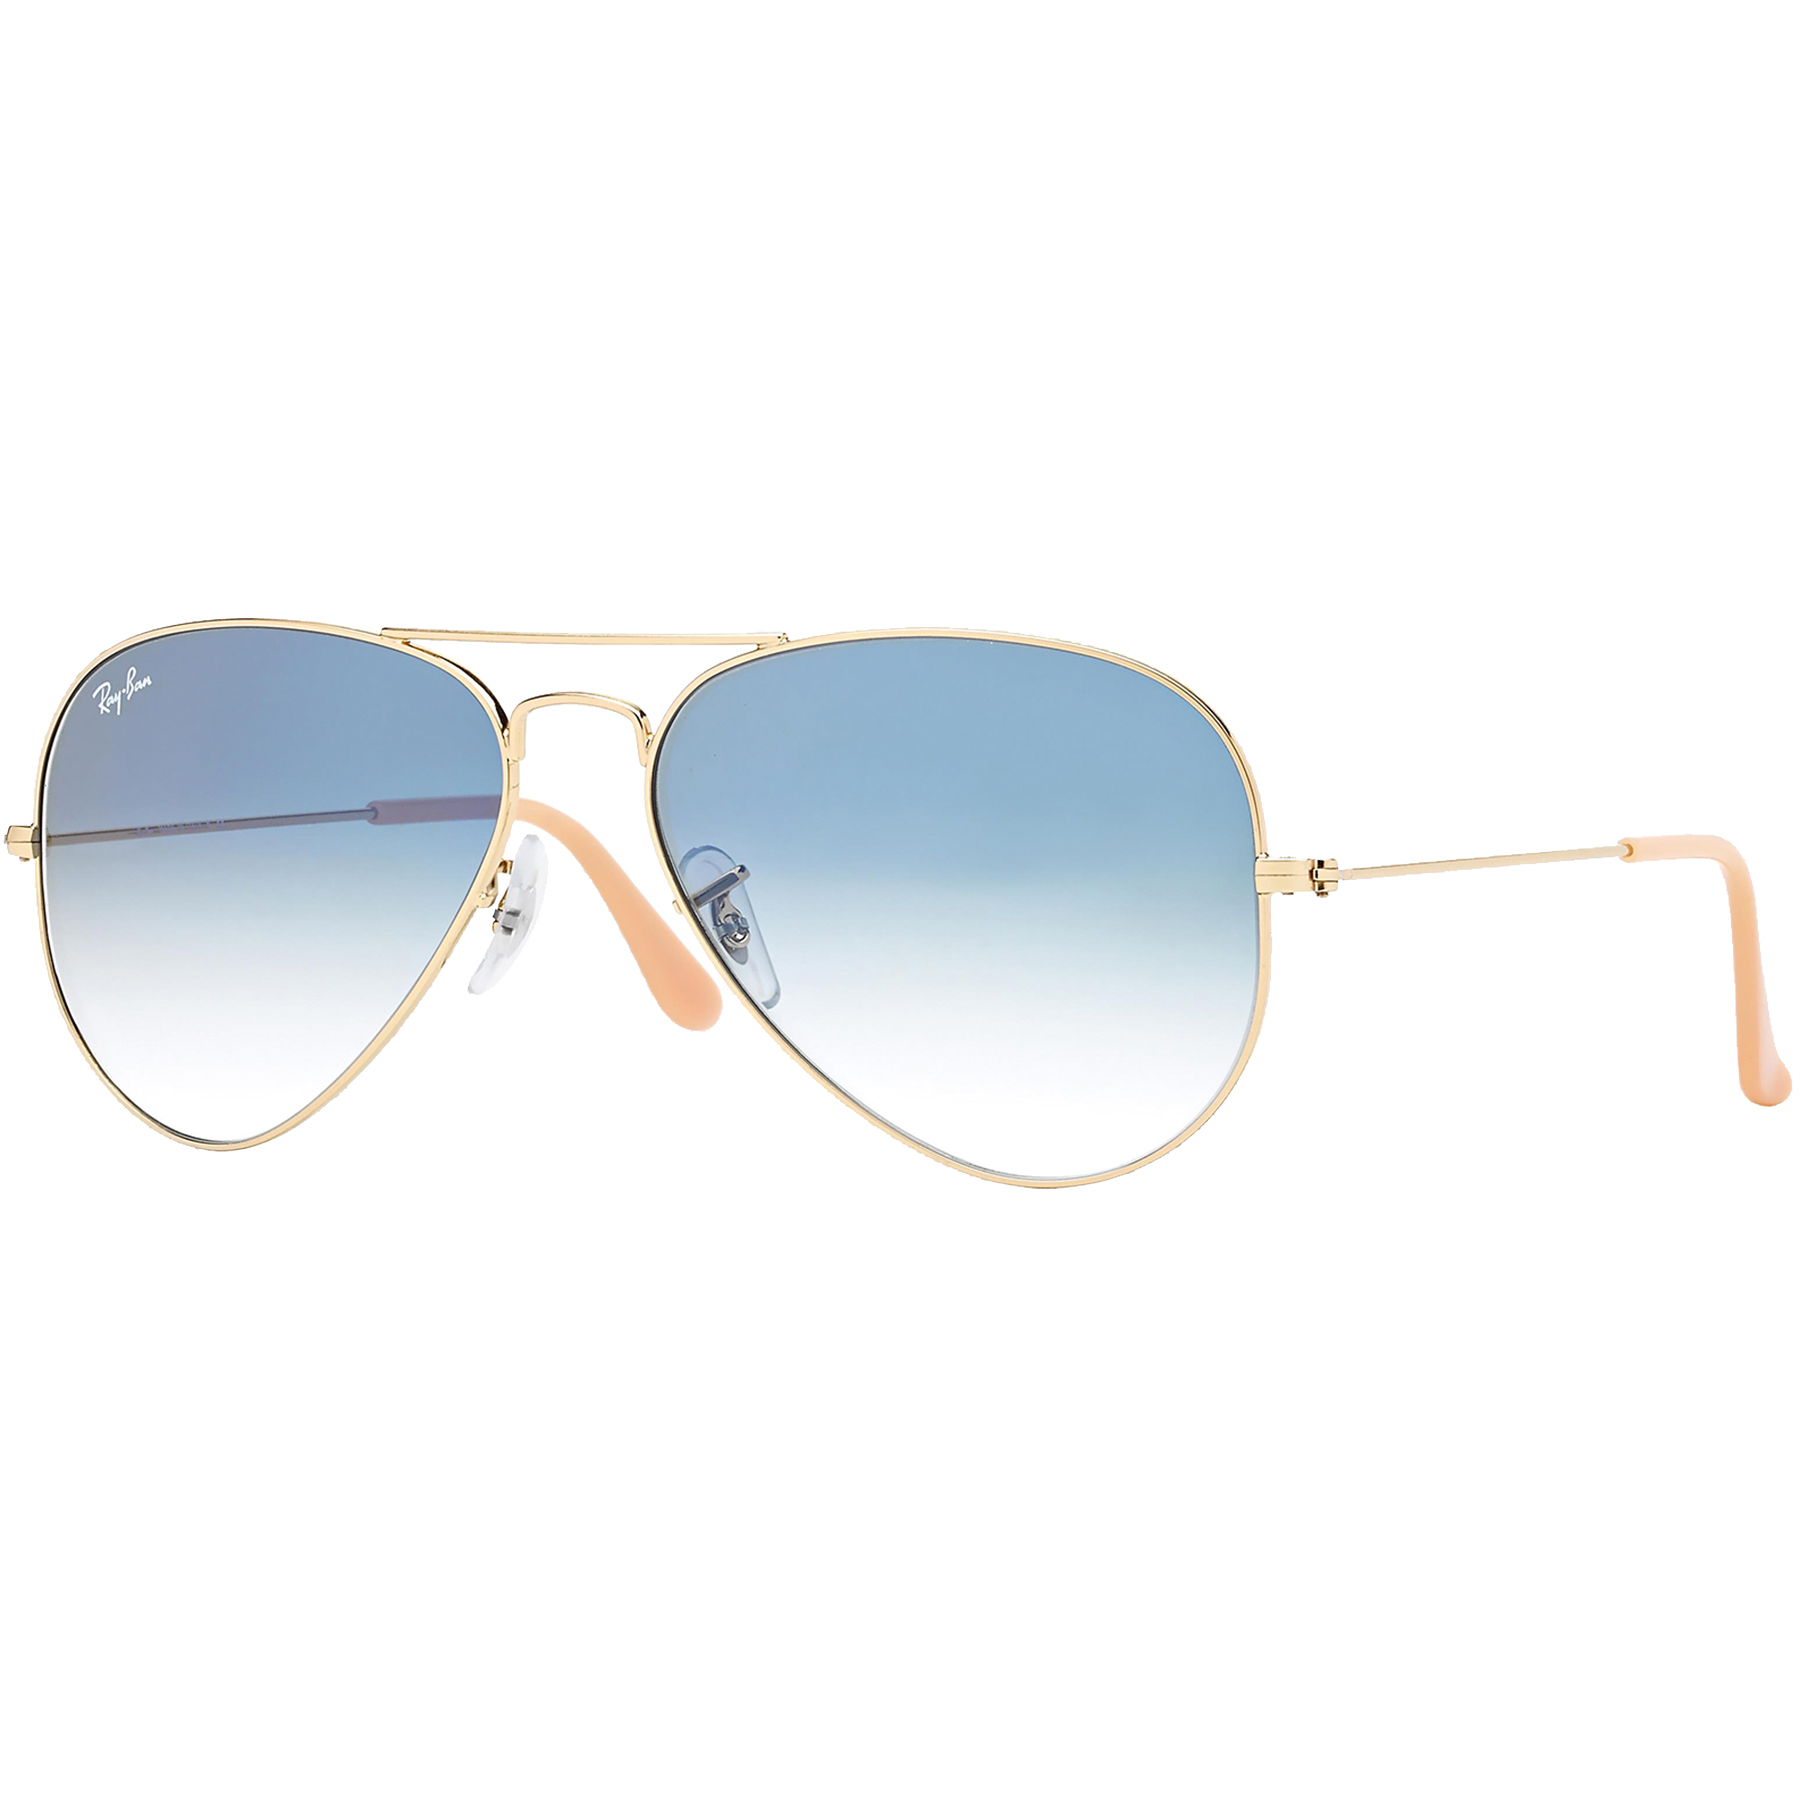 Ray-Ban Aviator Sunglasses - Blue Gradient - 0RB30250013F   Magnets.com f7e9e8cd9c0f